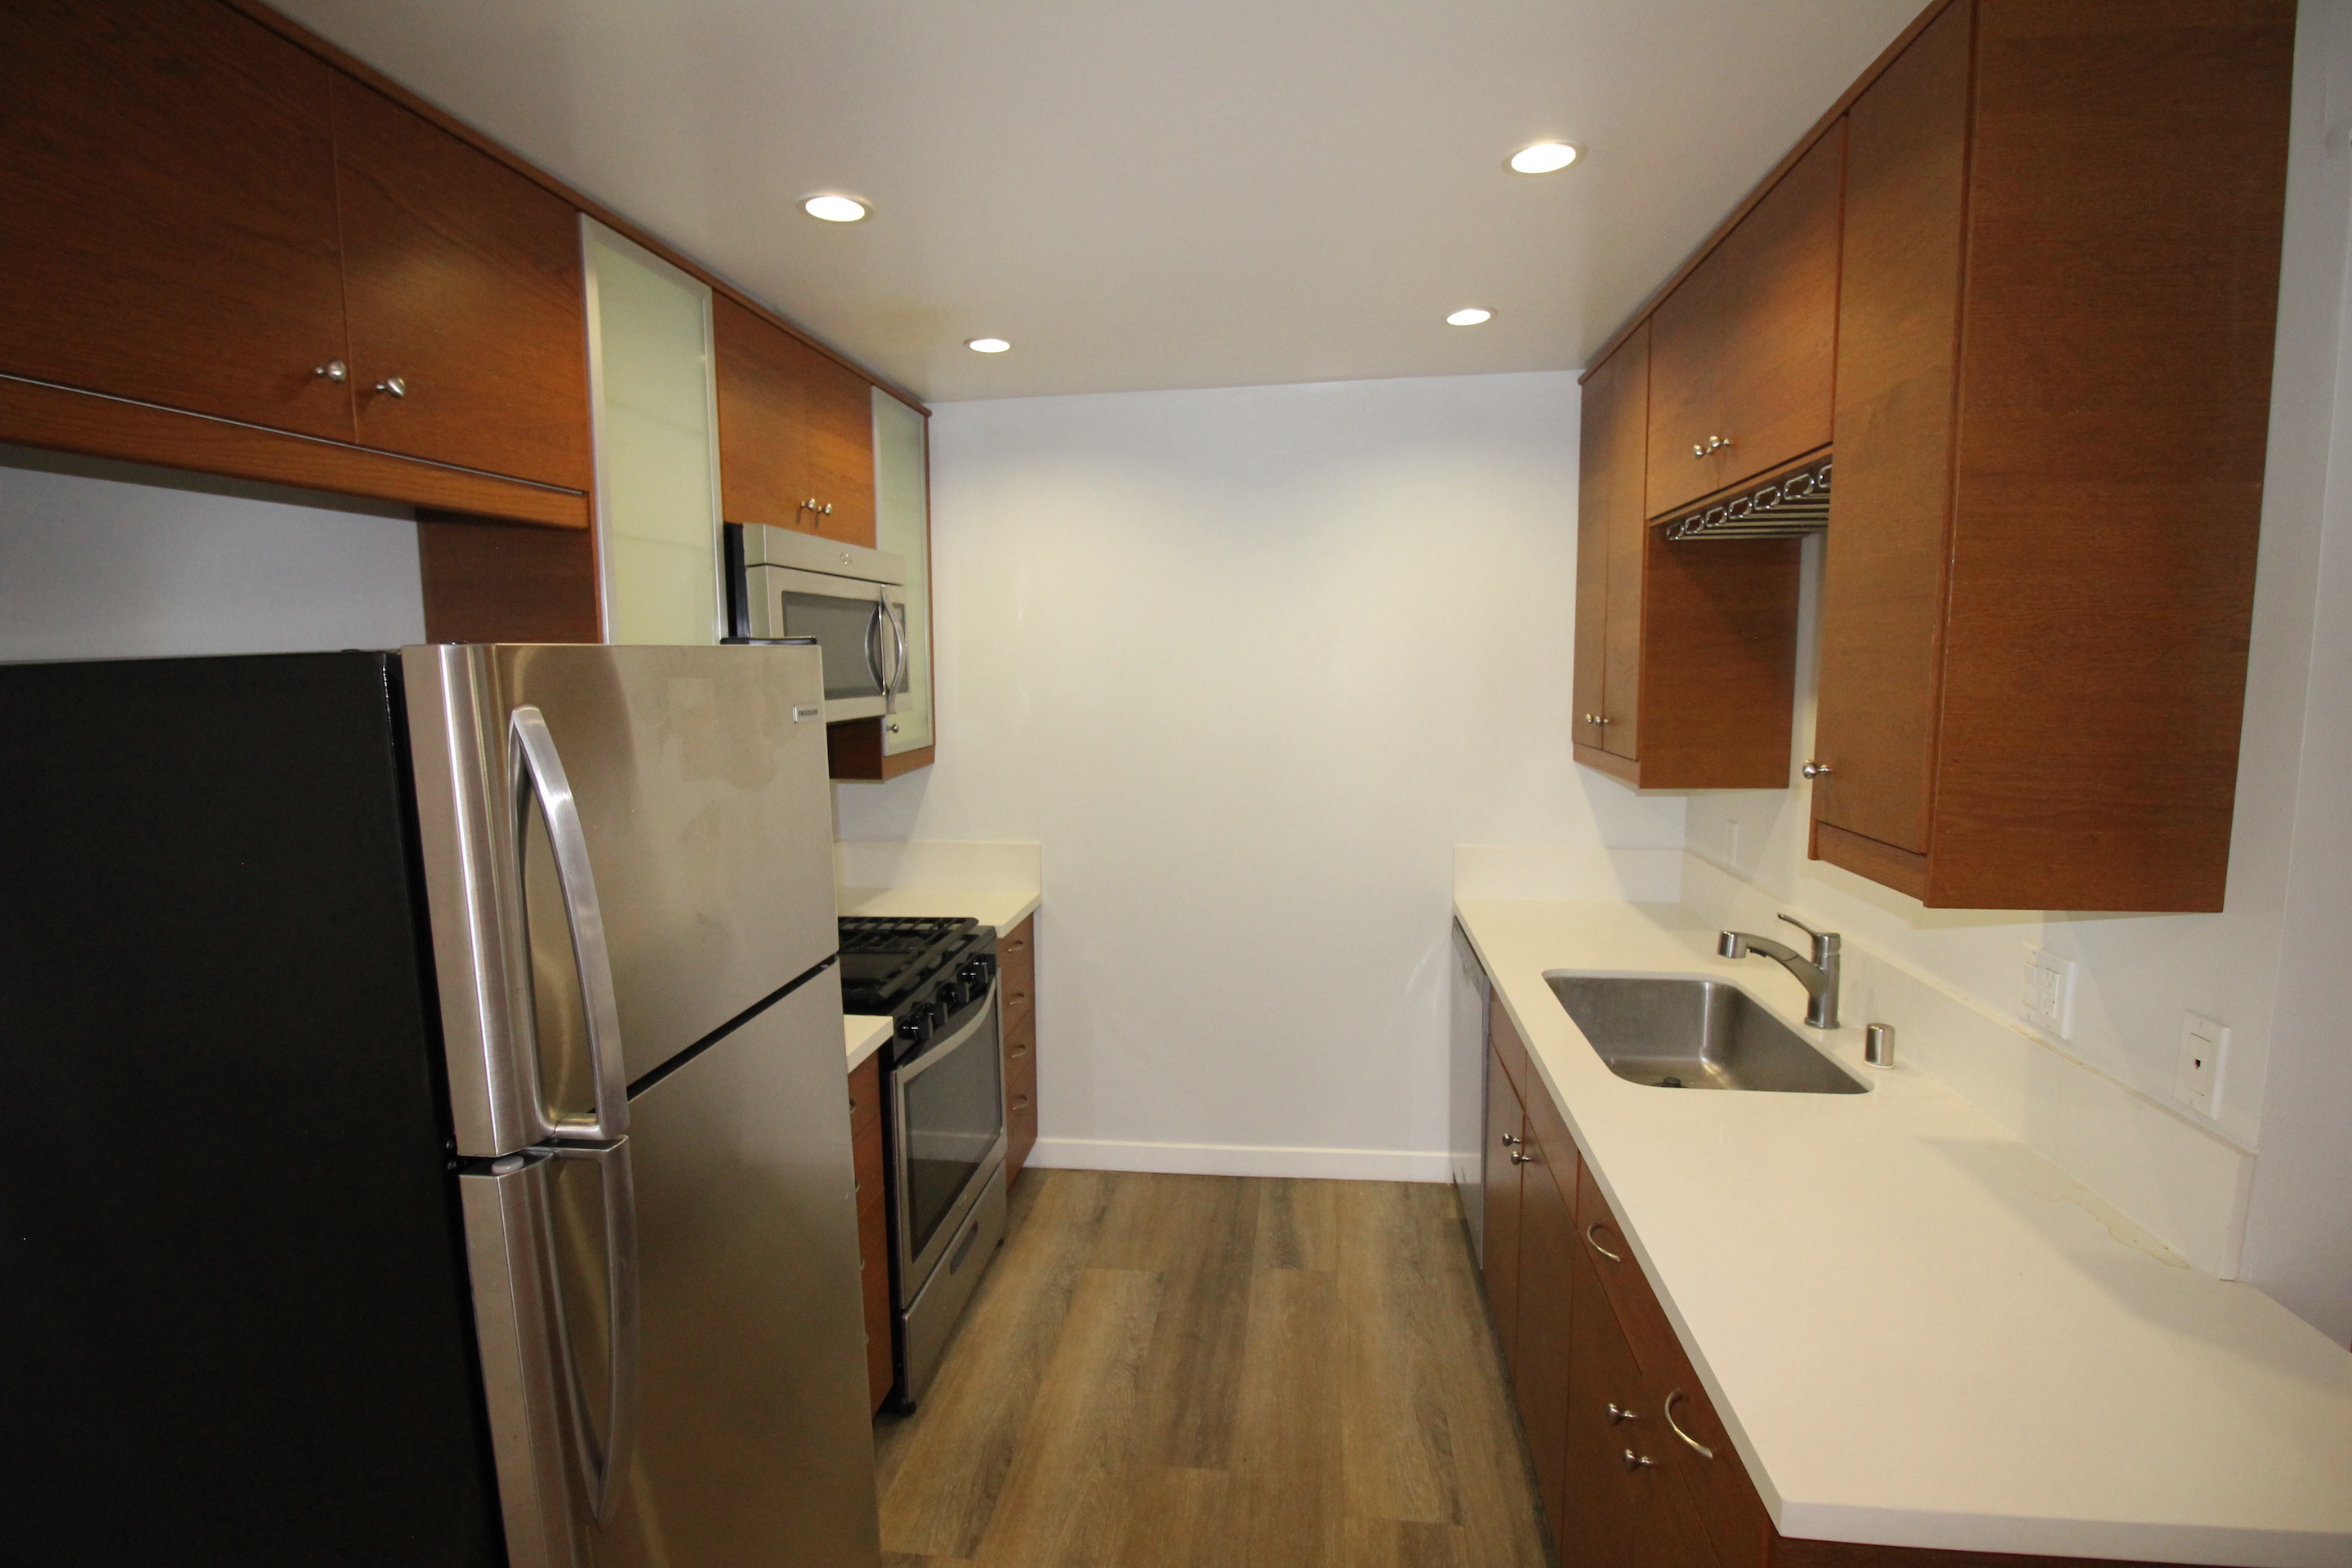 2 Bedroom apartment for rent in PALMS / 90034